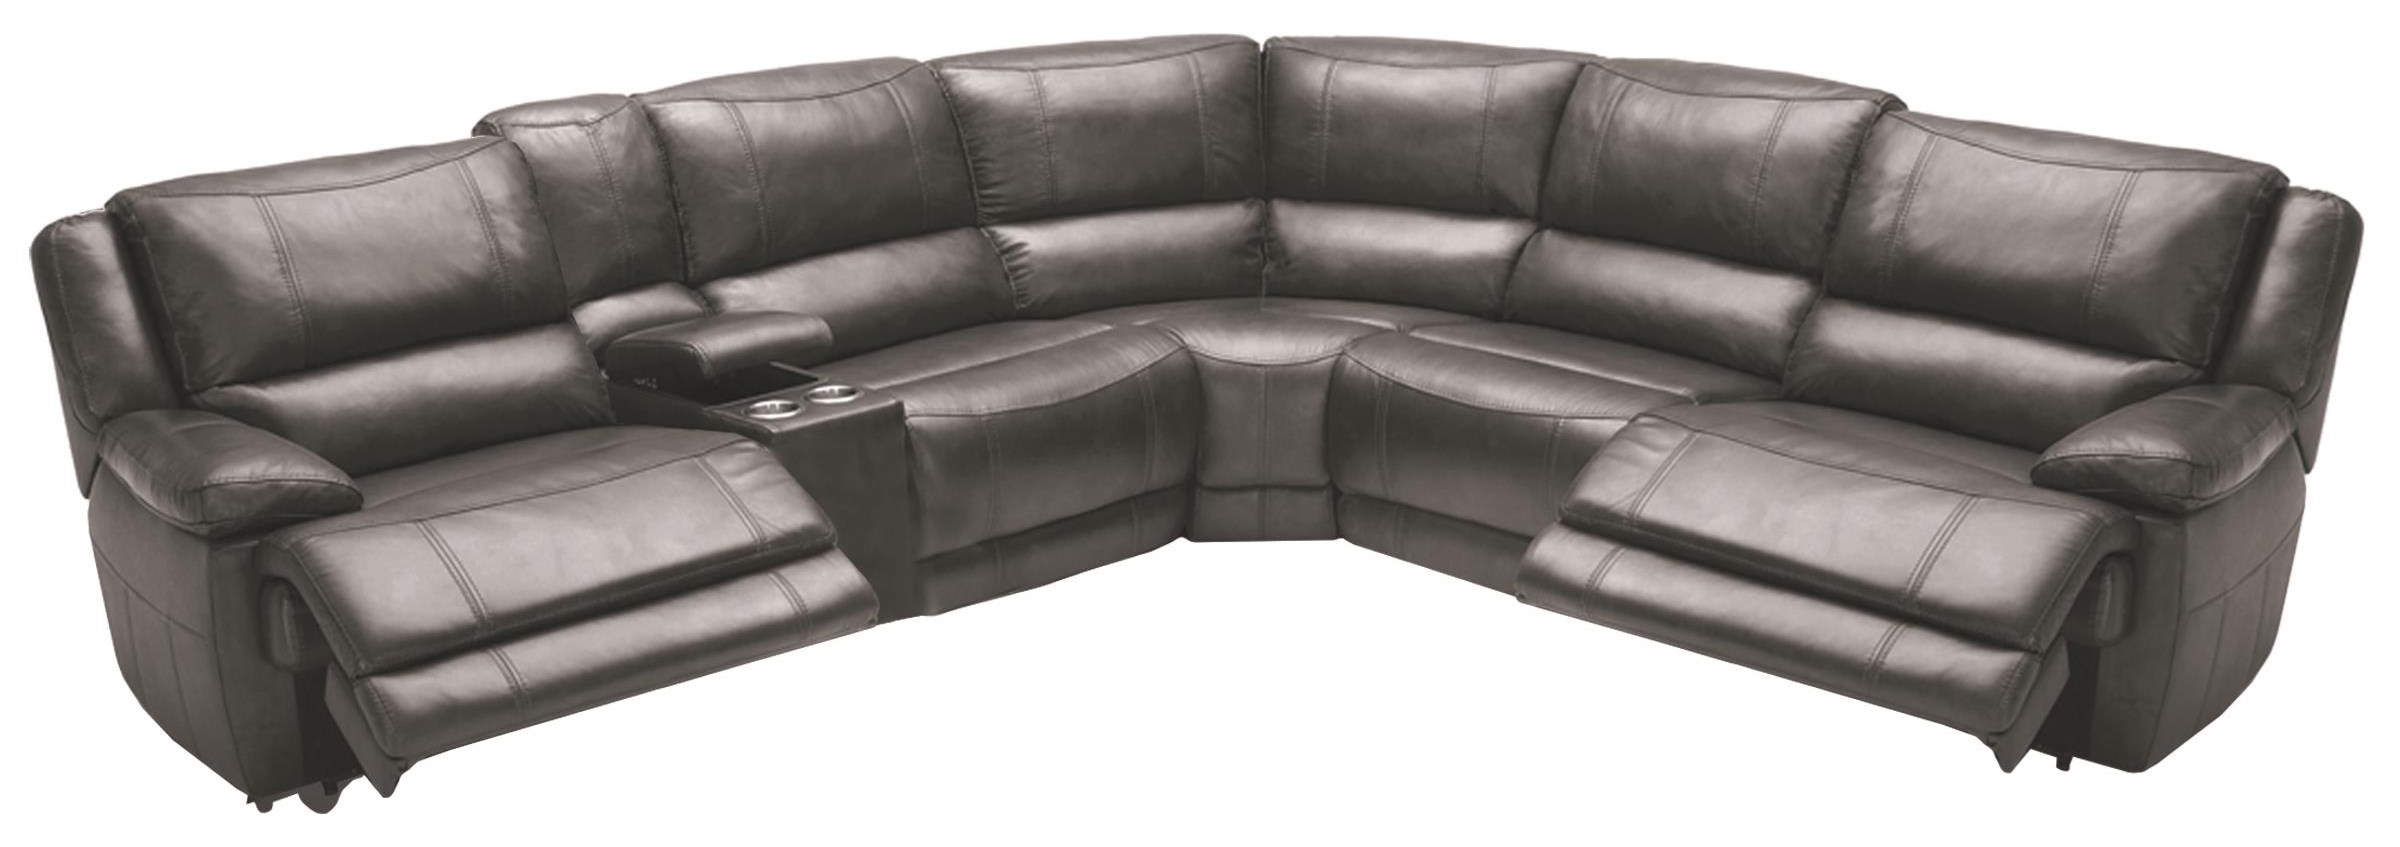 6 Pc Pwr Reclining Sectional Sofa at Sadler's Home Furnishings